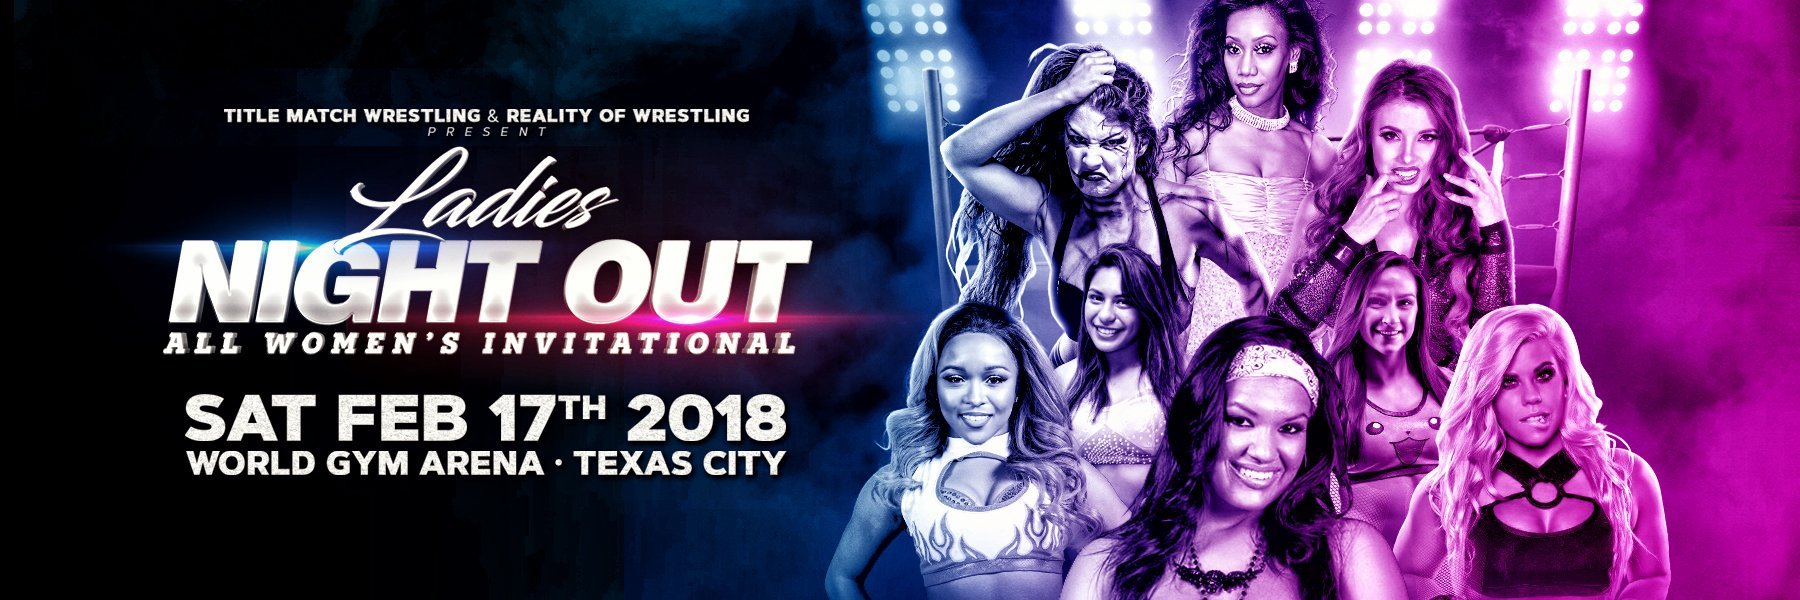 EXCLUSIVE: Our Ladies Night Out debut show feat Su Yung vs Kiera Hogan!